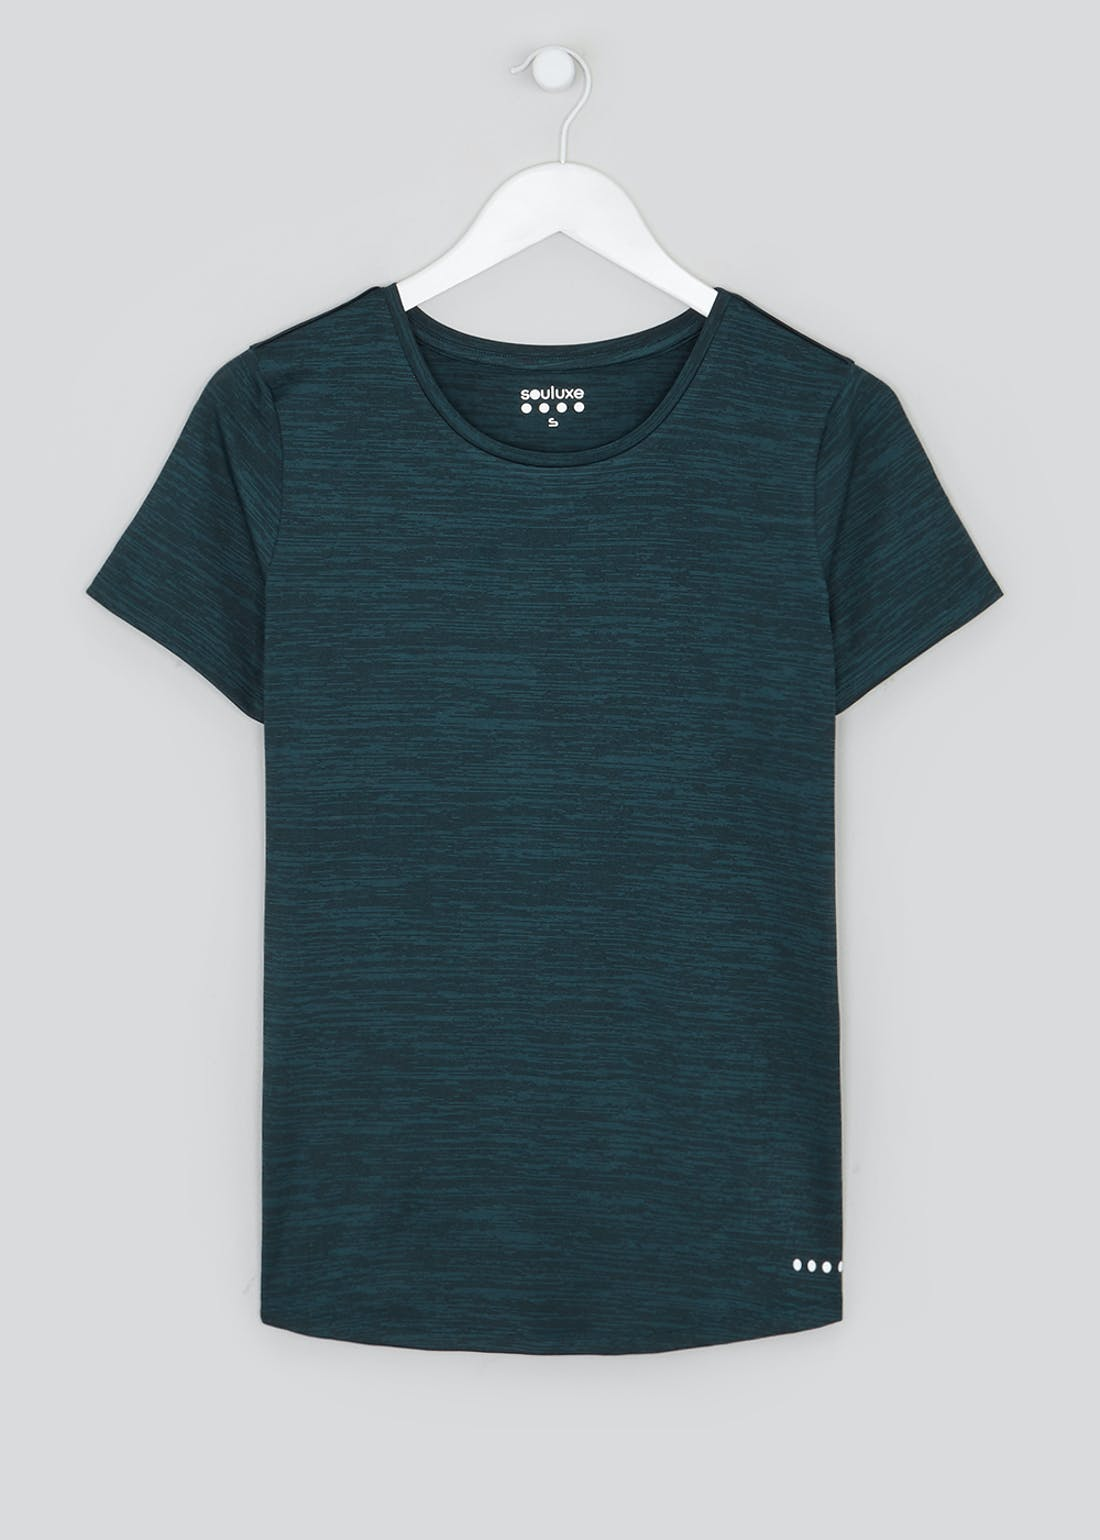 Souluxe Teal Pleat Back Gym T-Shirt